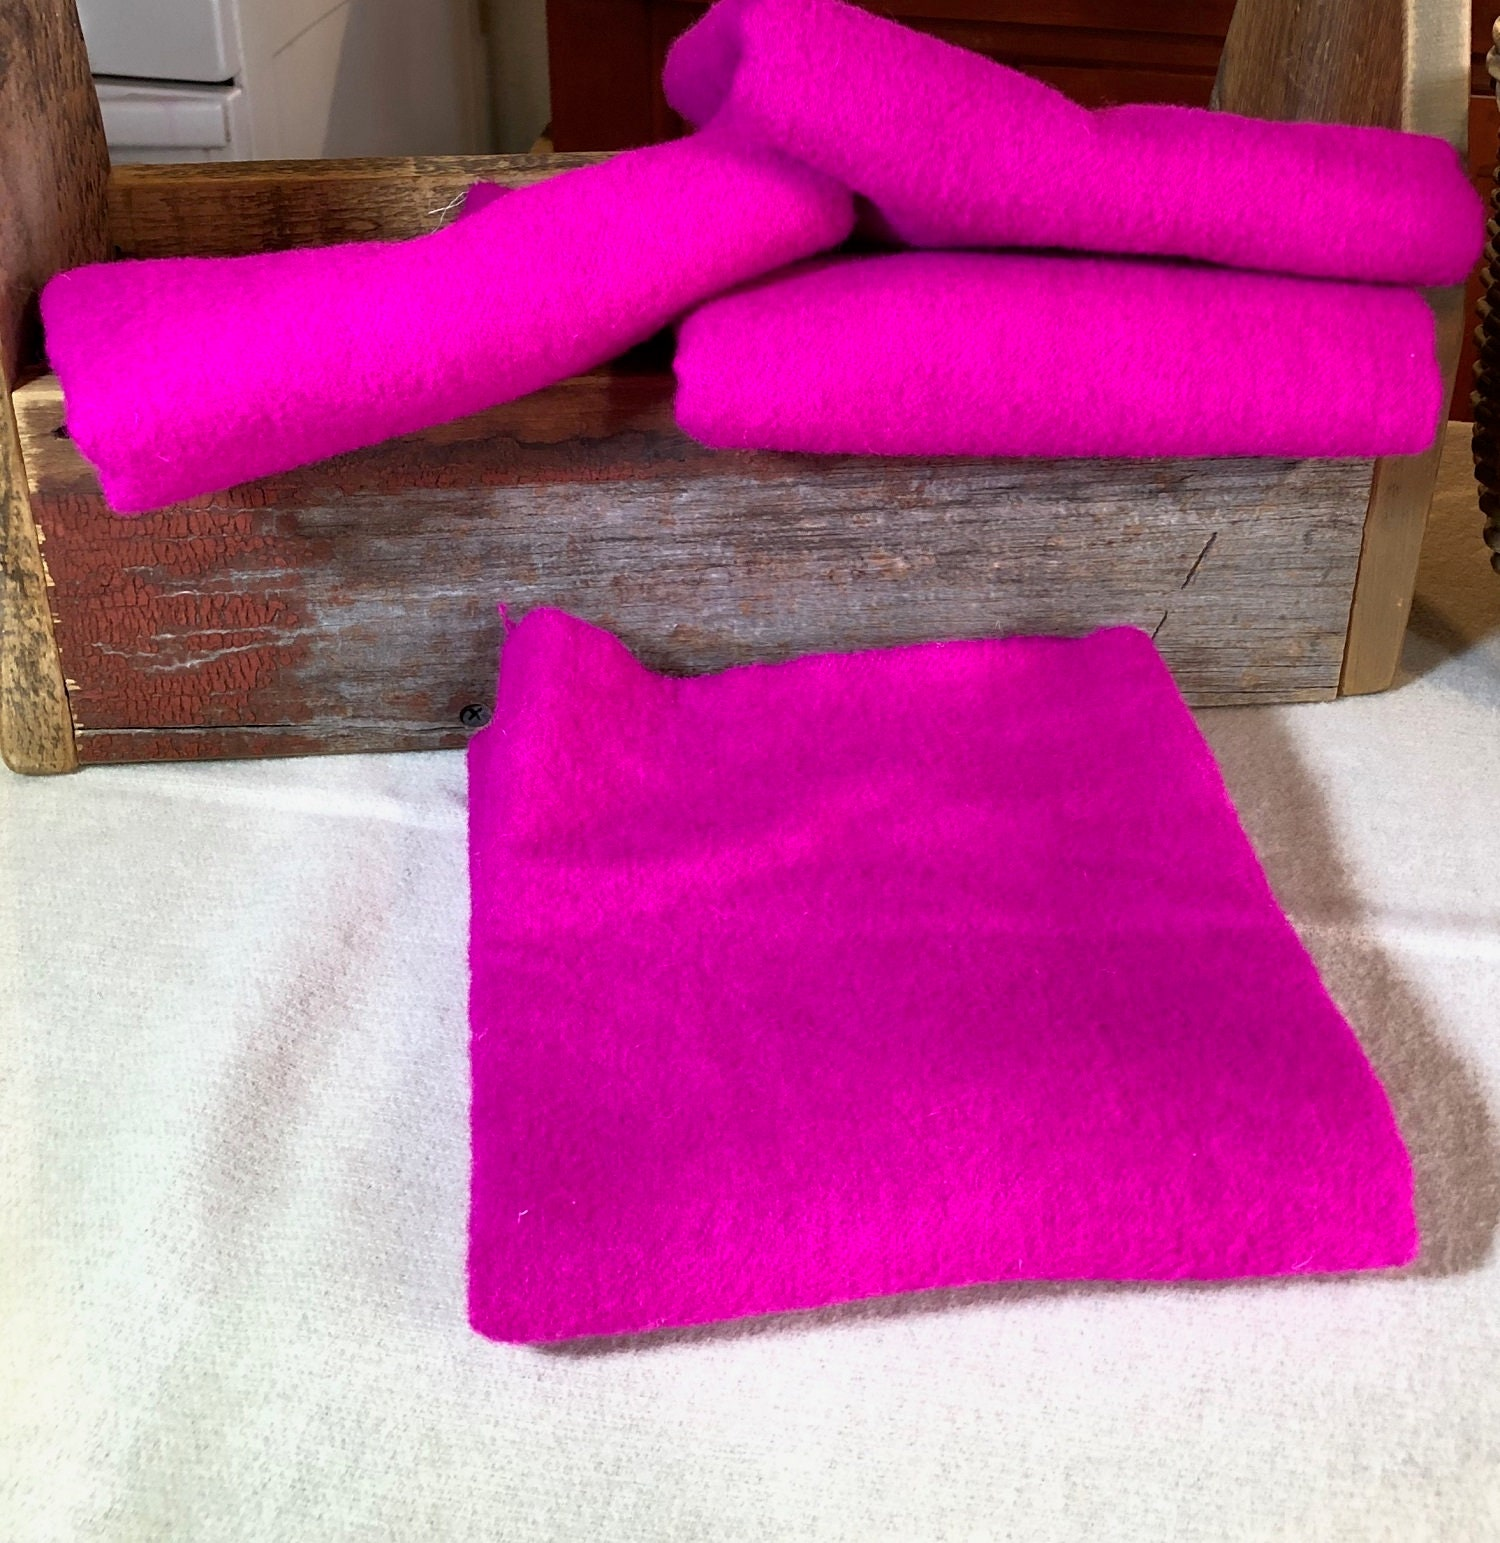 Bright Pink Handdyed Wool Fabric For Rug Hooking